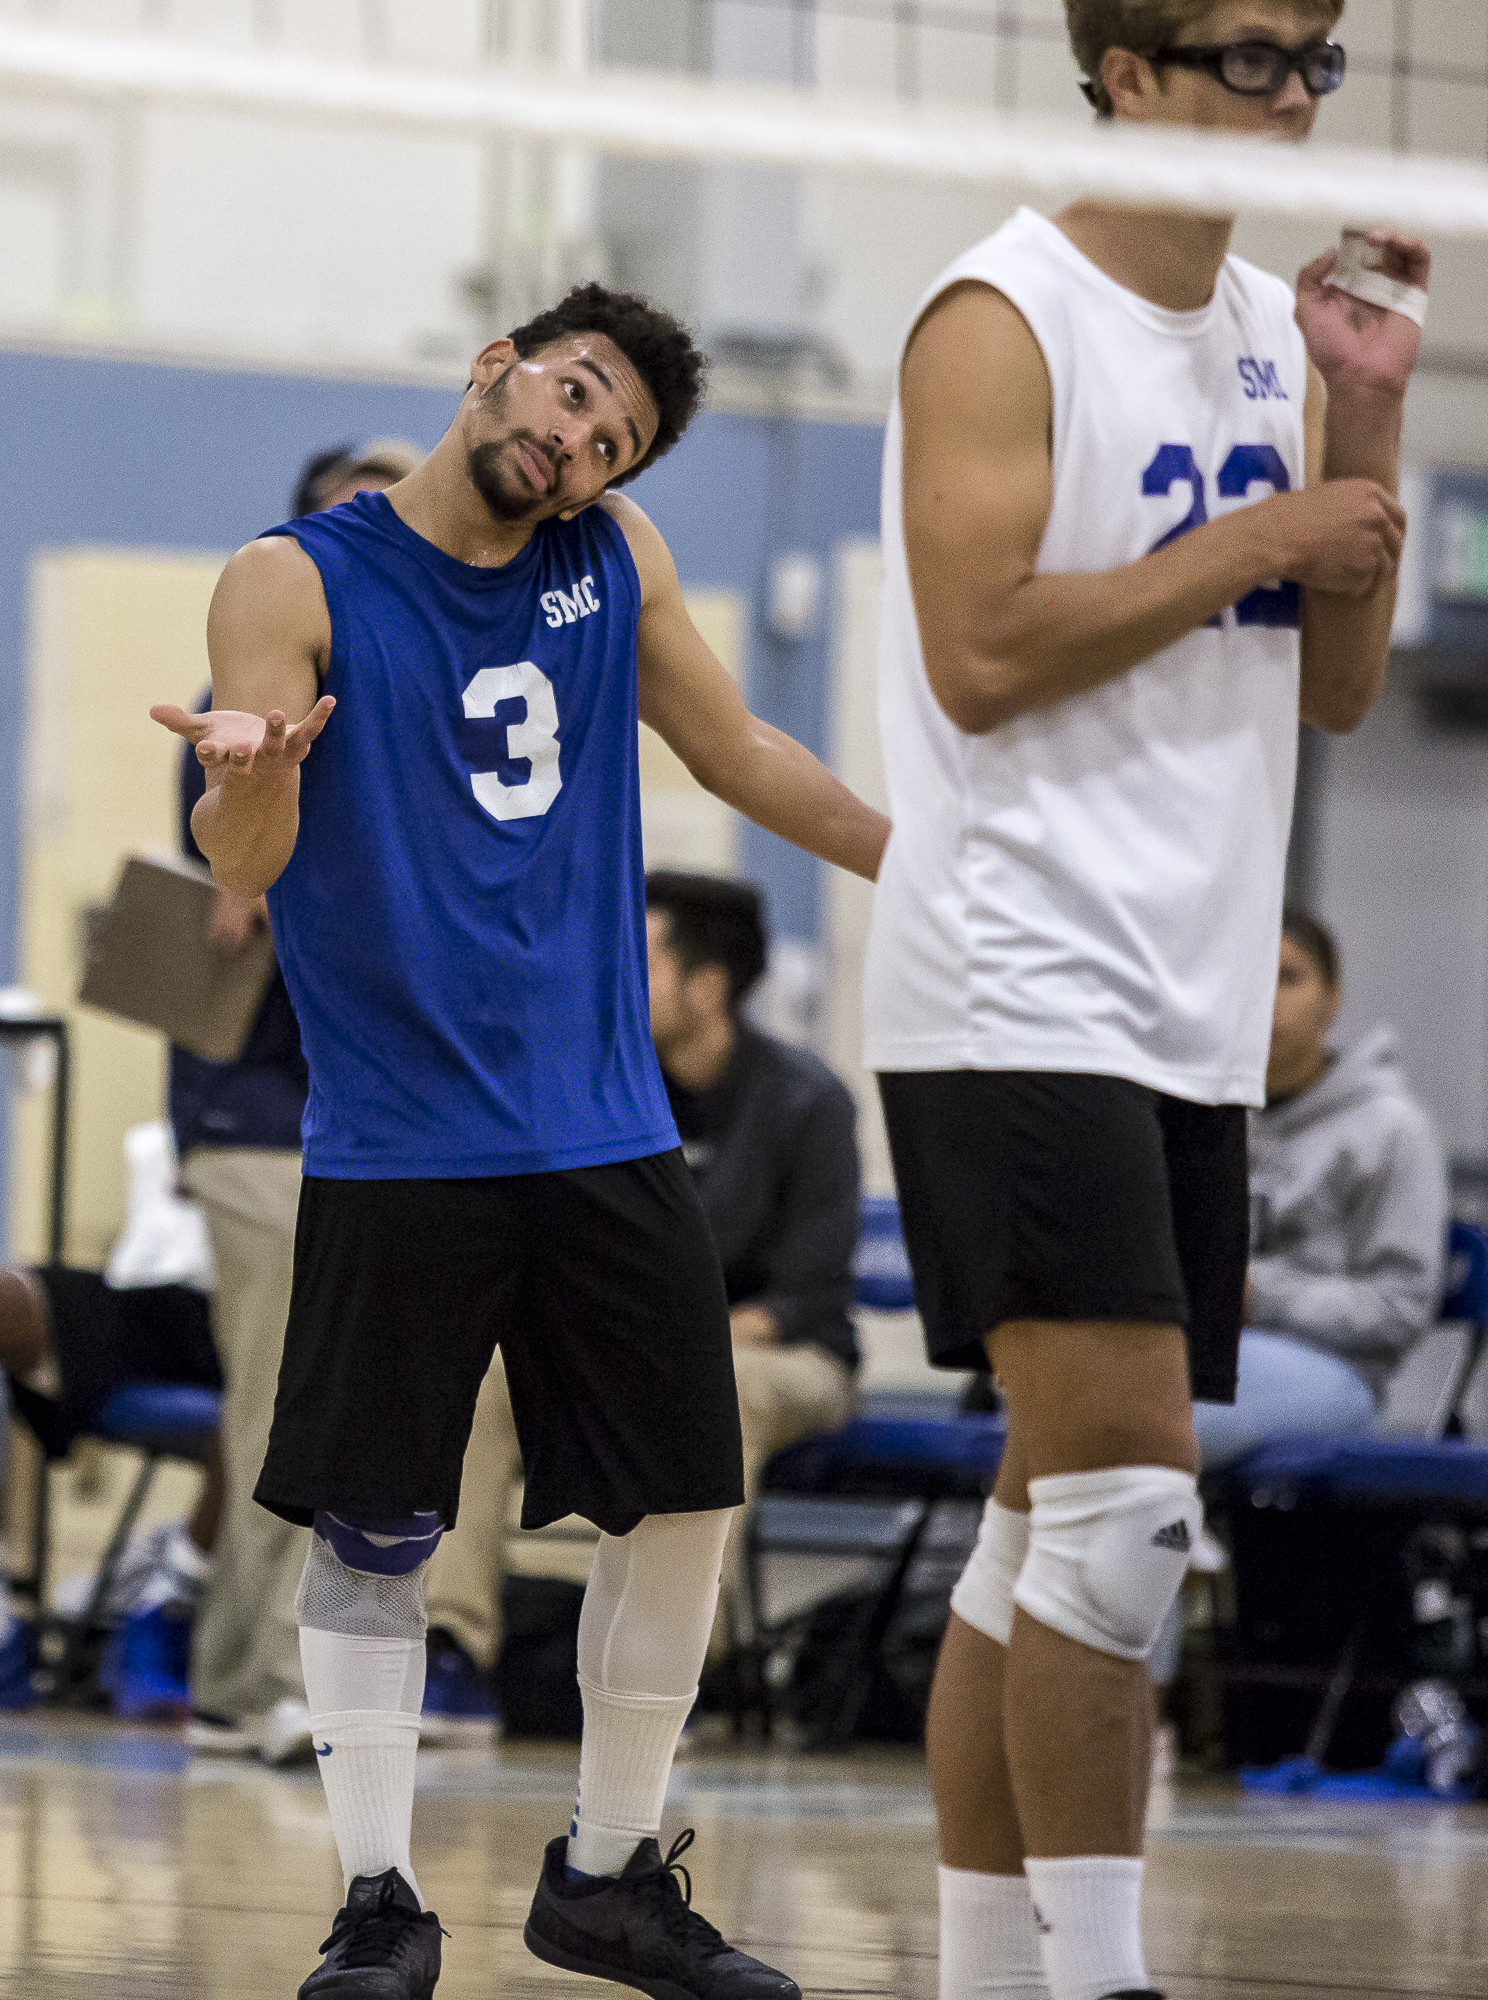 Santa Monica College Corsair Libero Elijah Chambers #3 (center/left, blue) shrugs to one of his teammates after losing a point to The Los Angeles Trade Tech College Beavers during the Corsairs 3-0 blowout victory against the Tech Beavers in the Santa Monica College (SMC) Pavilion at the SMC main campus in Santa Monica California, on Friday, March 30 2018. (Matthew Martin/Corsair Photo).